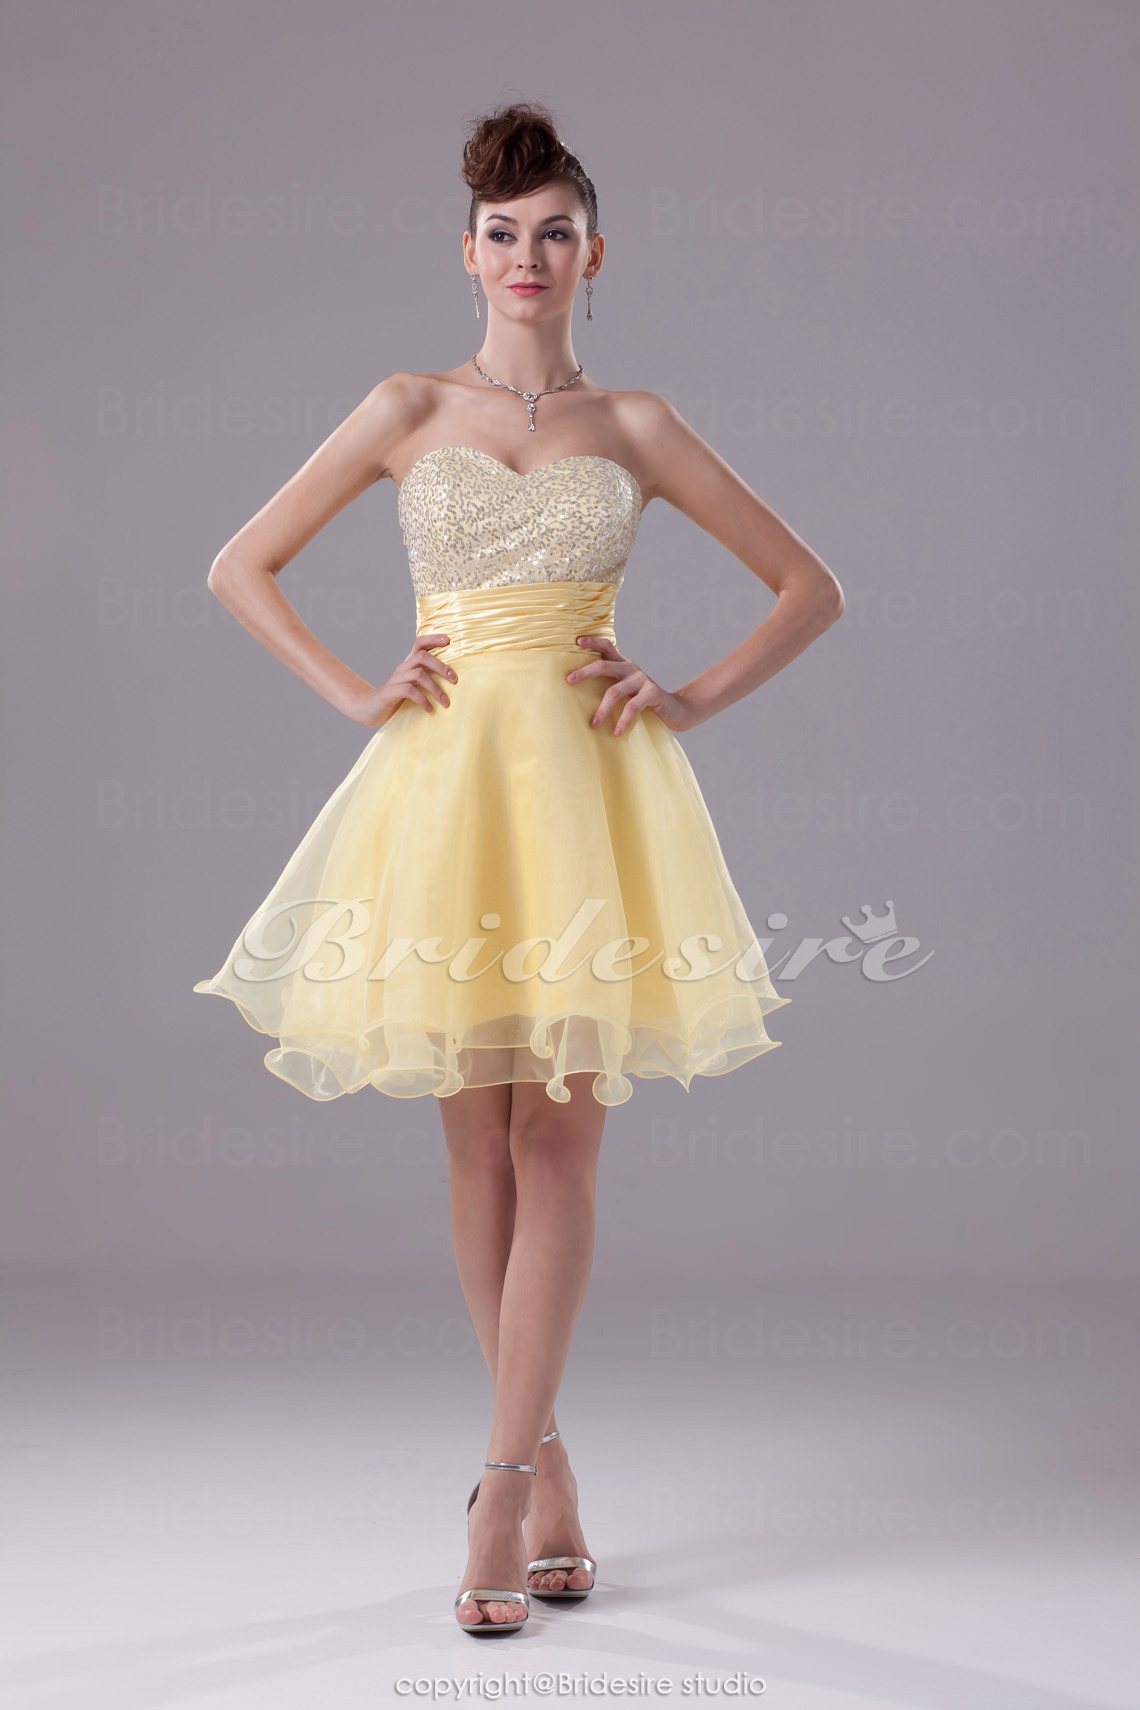 A-line Sweetheart Short/Mini Sleeveless Sequined Stretch Satin Organza Dress